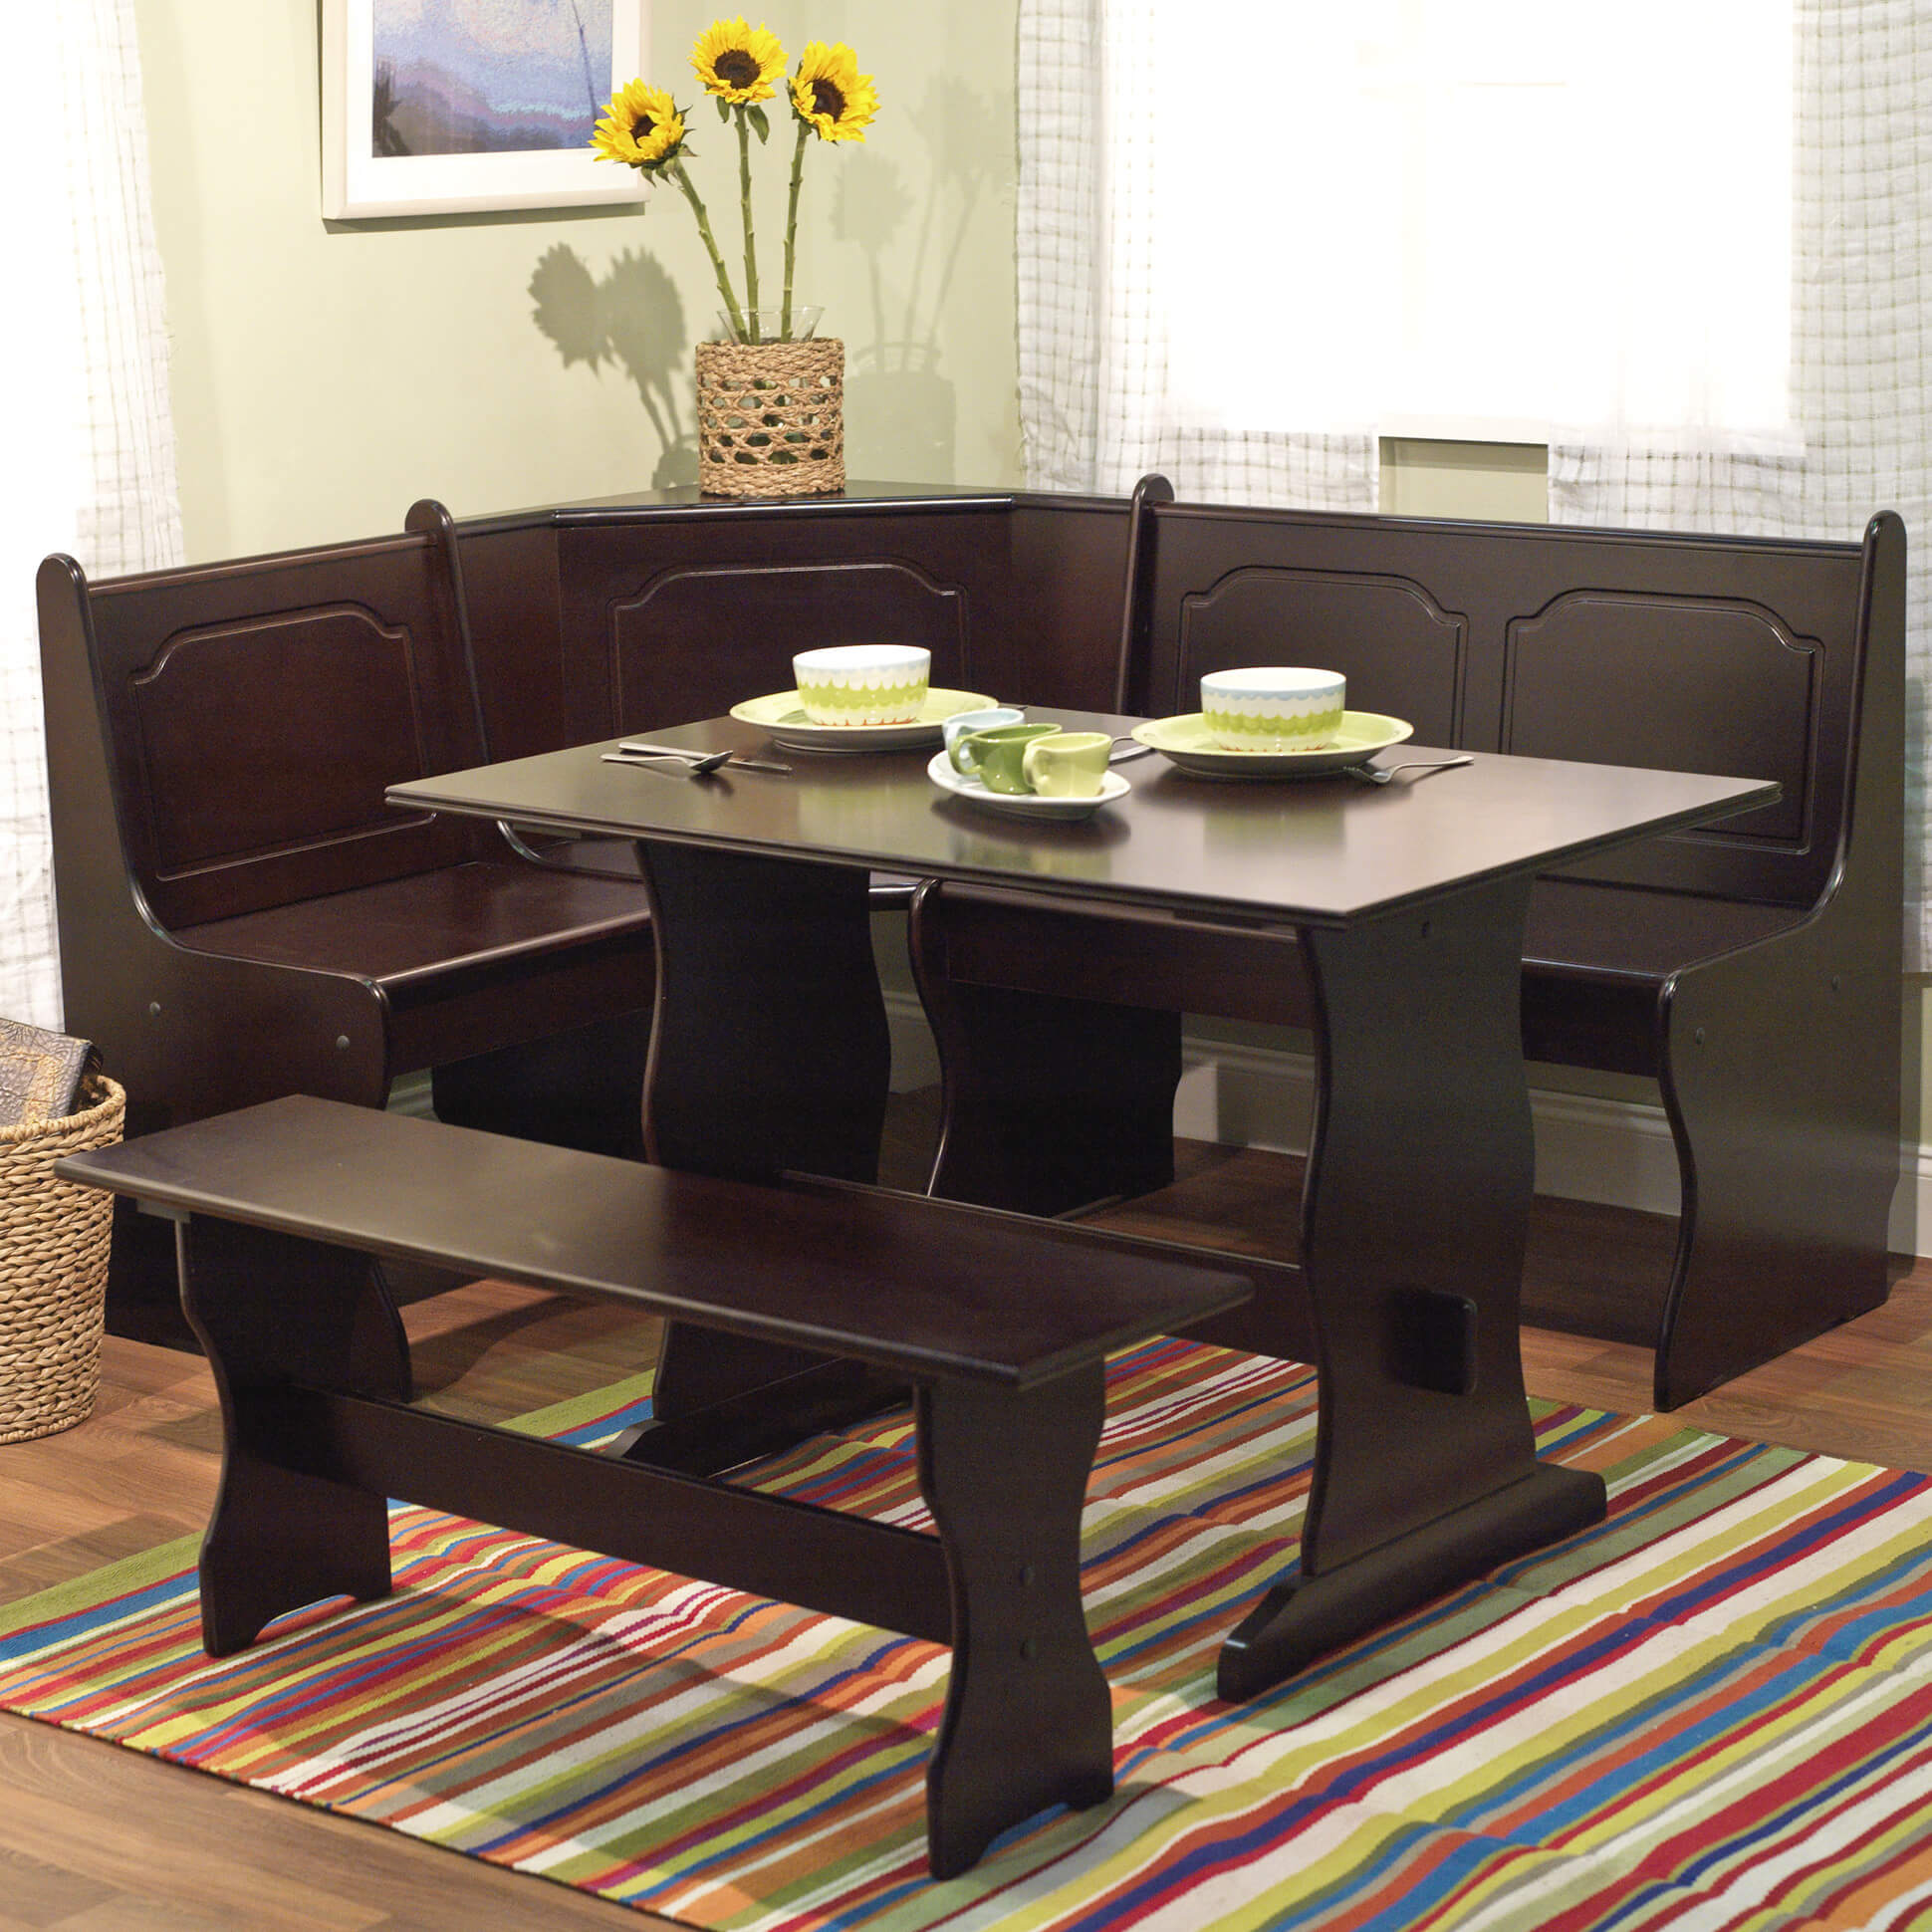 bench cleveland s moriville dining room set counter furniture with height scott table ashley gallery